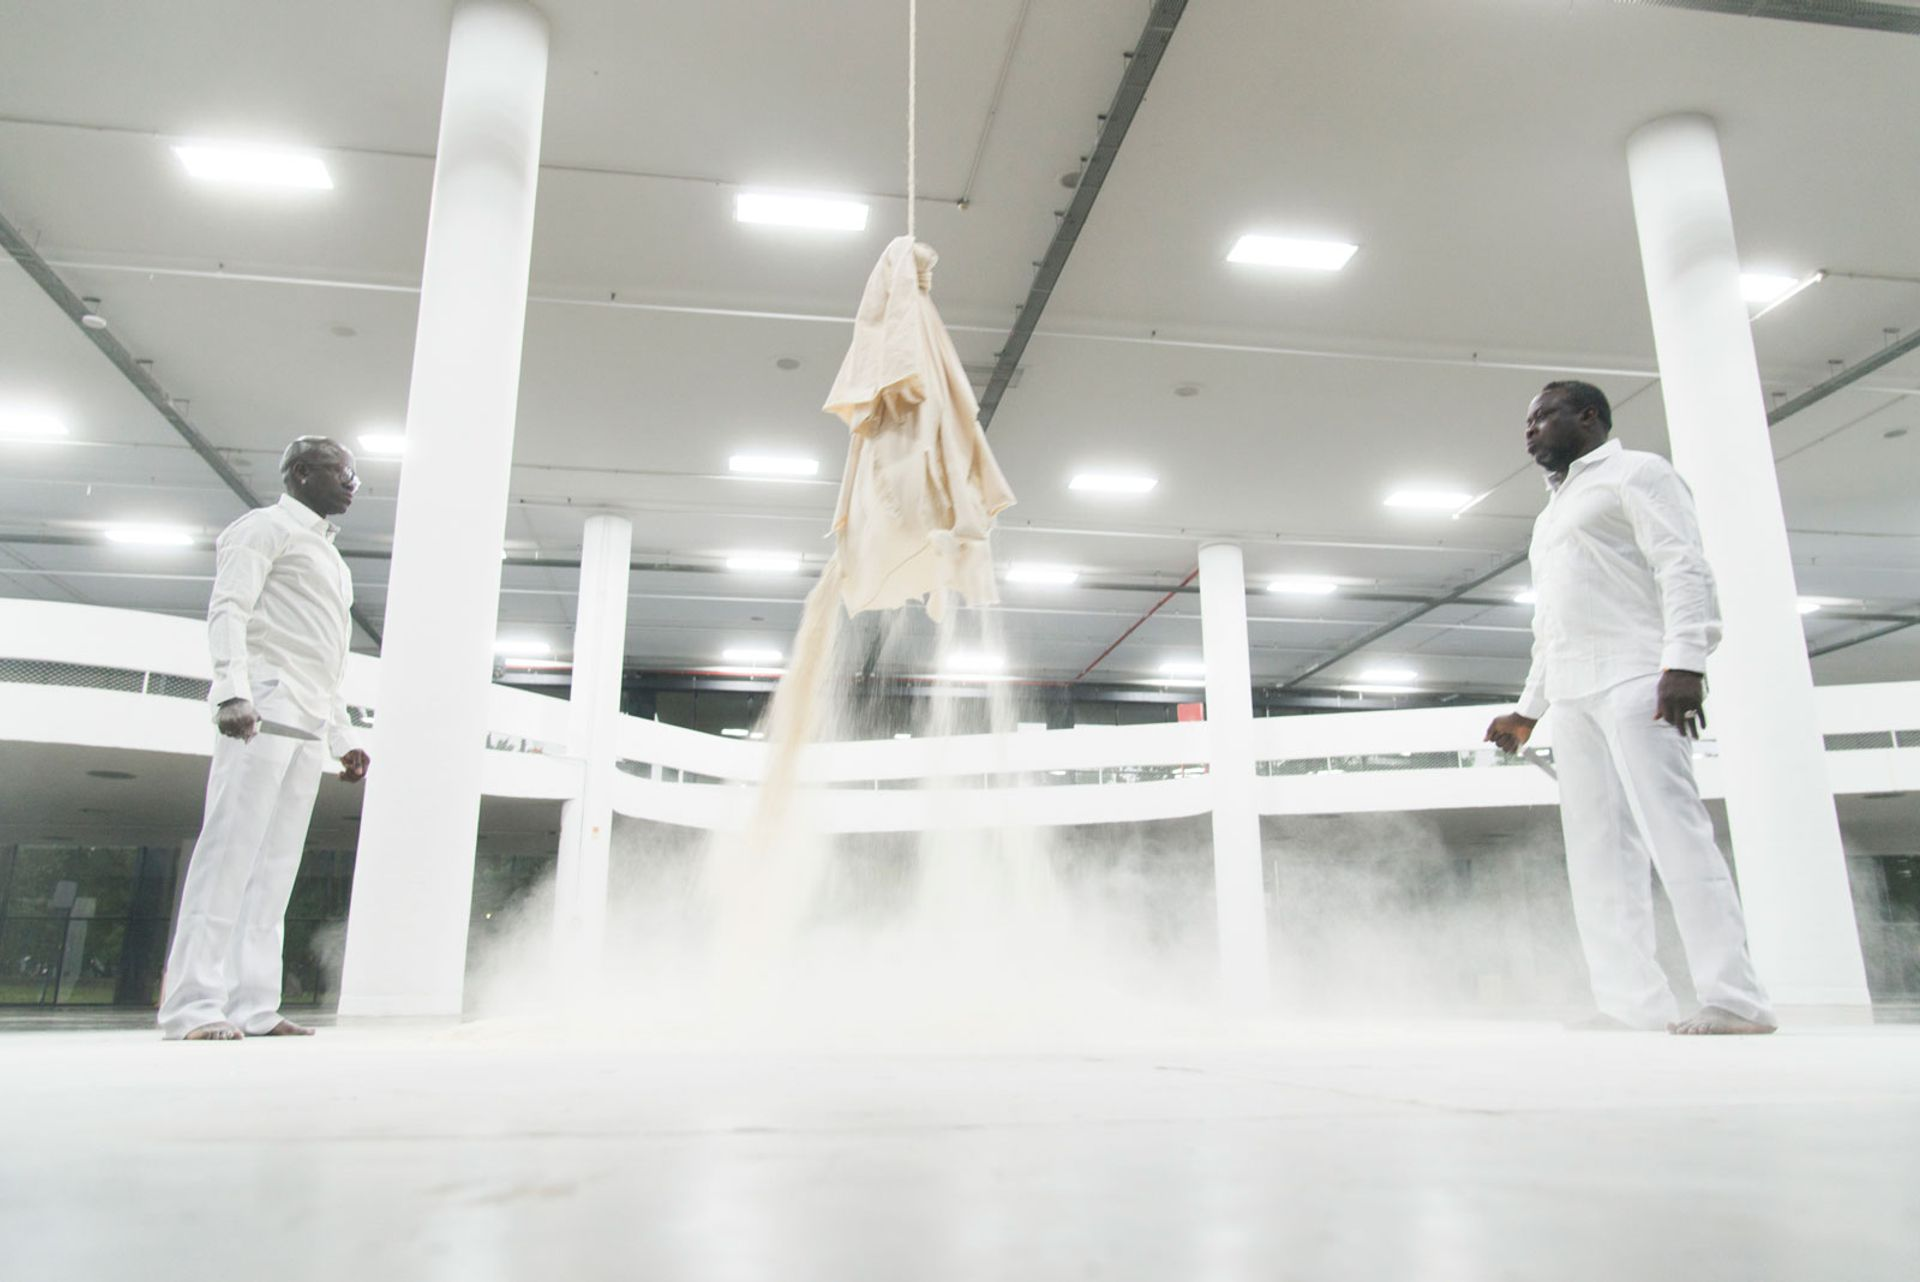 Paulo Nazareth's performance for the Vento exhibition, an early element of the 34th Bienal de São Paulo